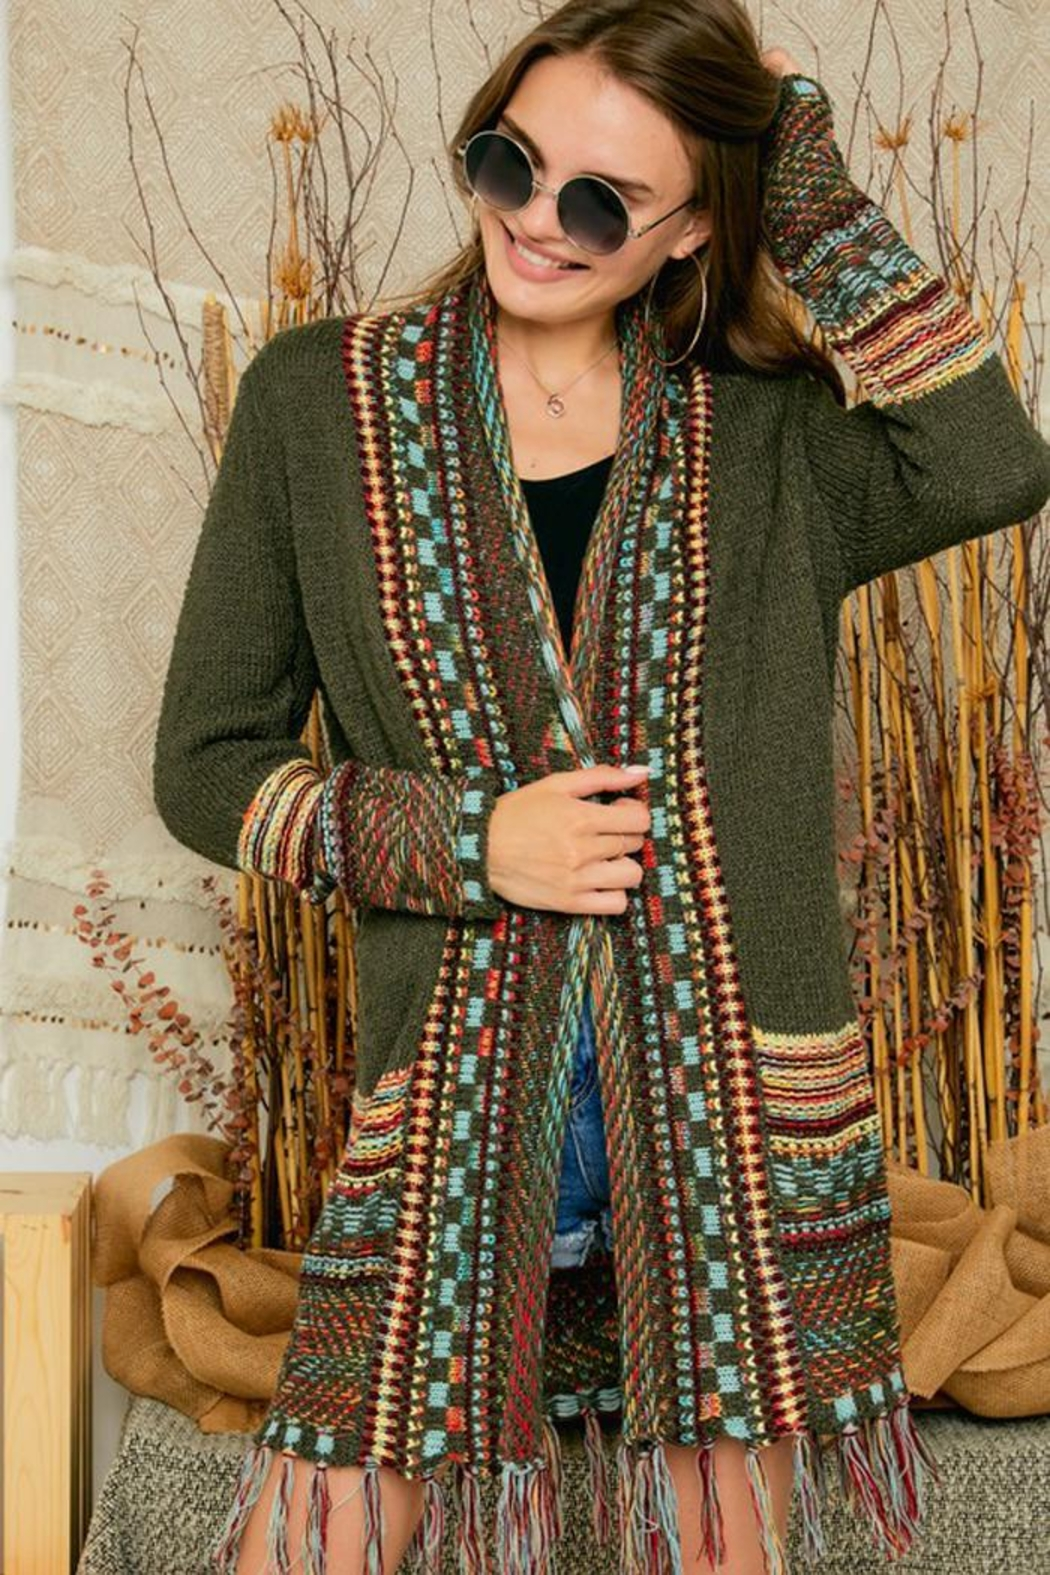 Adora Aztec Tribal Patterned Sweater Knit Cardigan With Fringes - Front Full Image